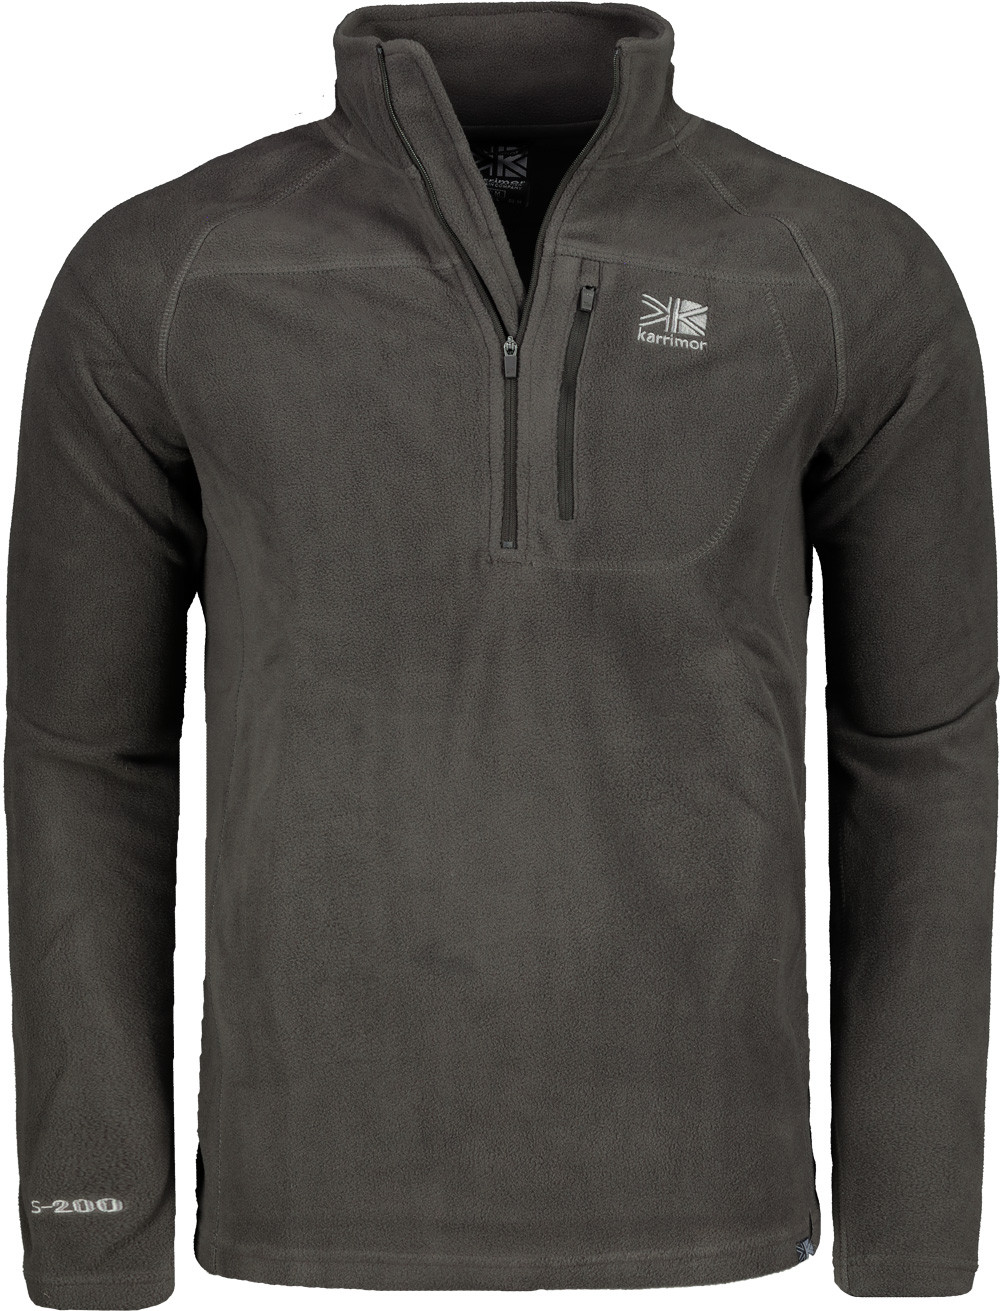 Men's fleece sweatshirt  Karrimor KS200 Micro